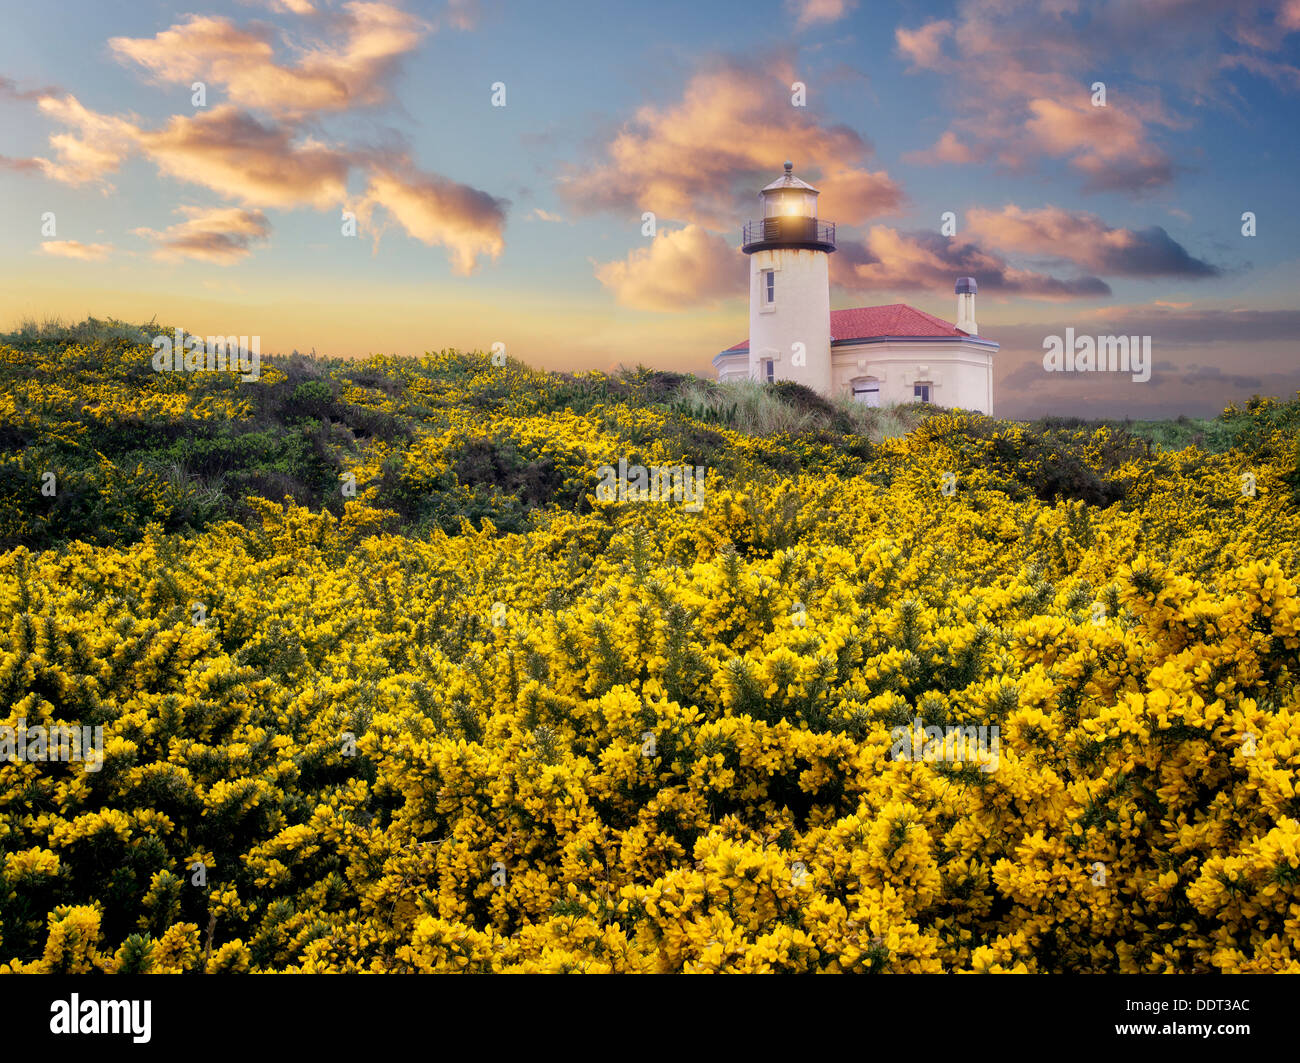 Coquile River Lighthouse with gorse. Bandon, Oregon C00454D-5 - Stock Image